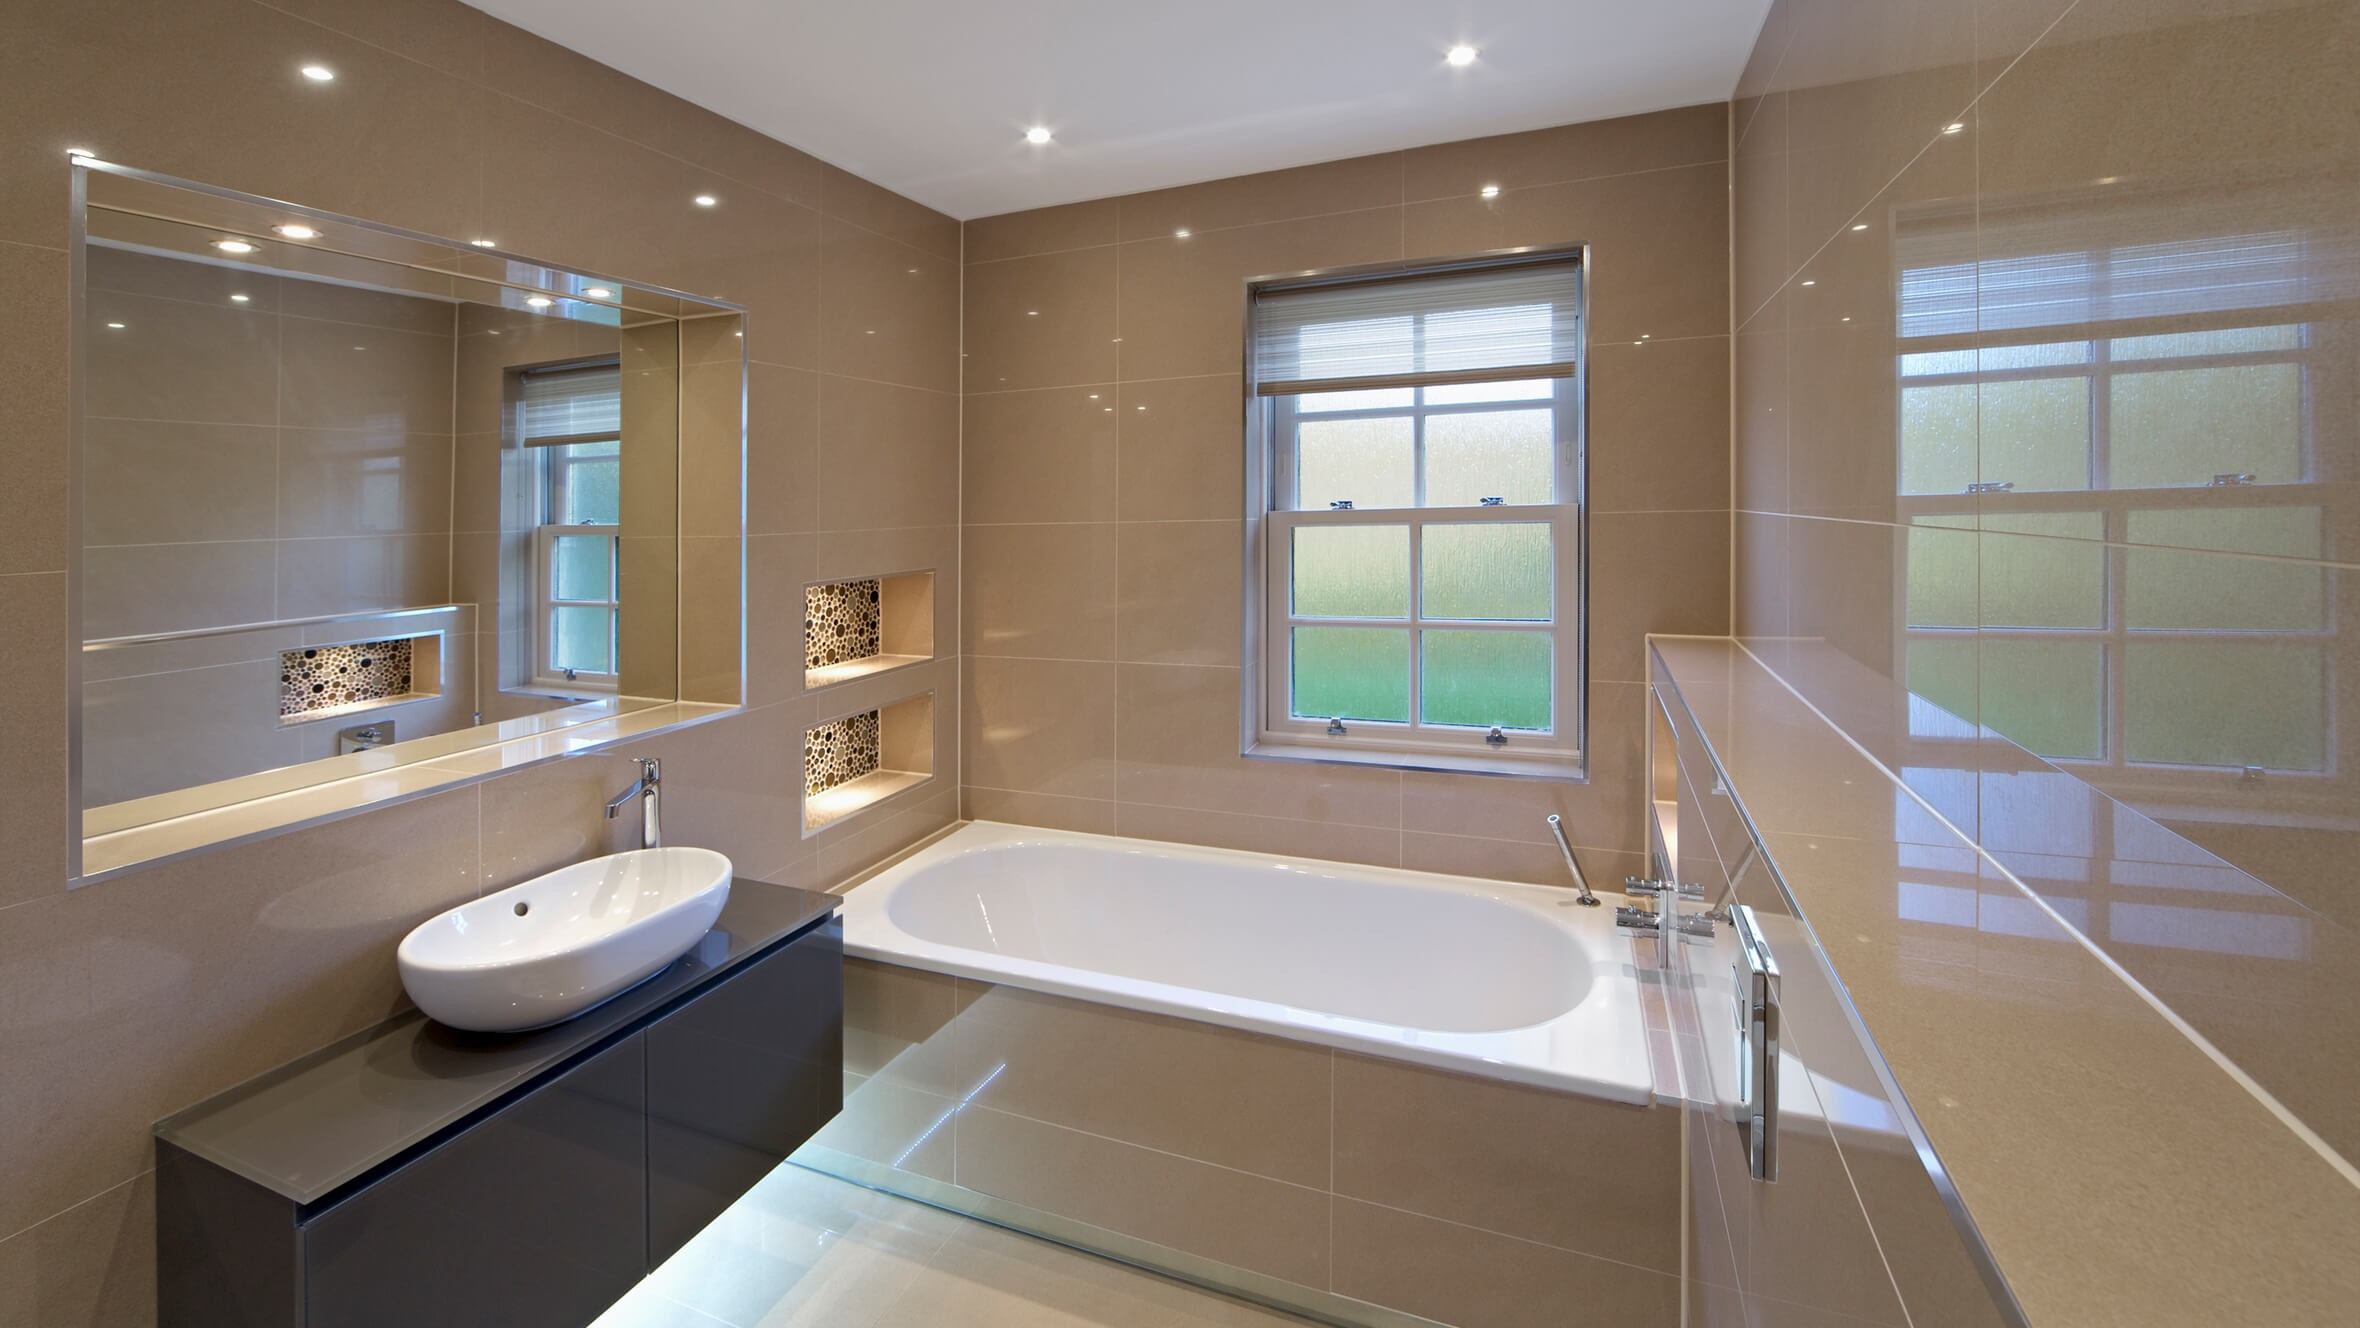 Led Downlights Bathroom Homswet throughout dimensions 2360 X 1328